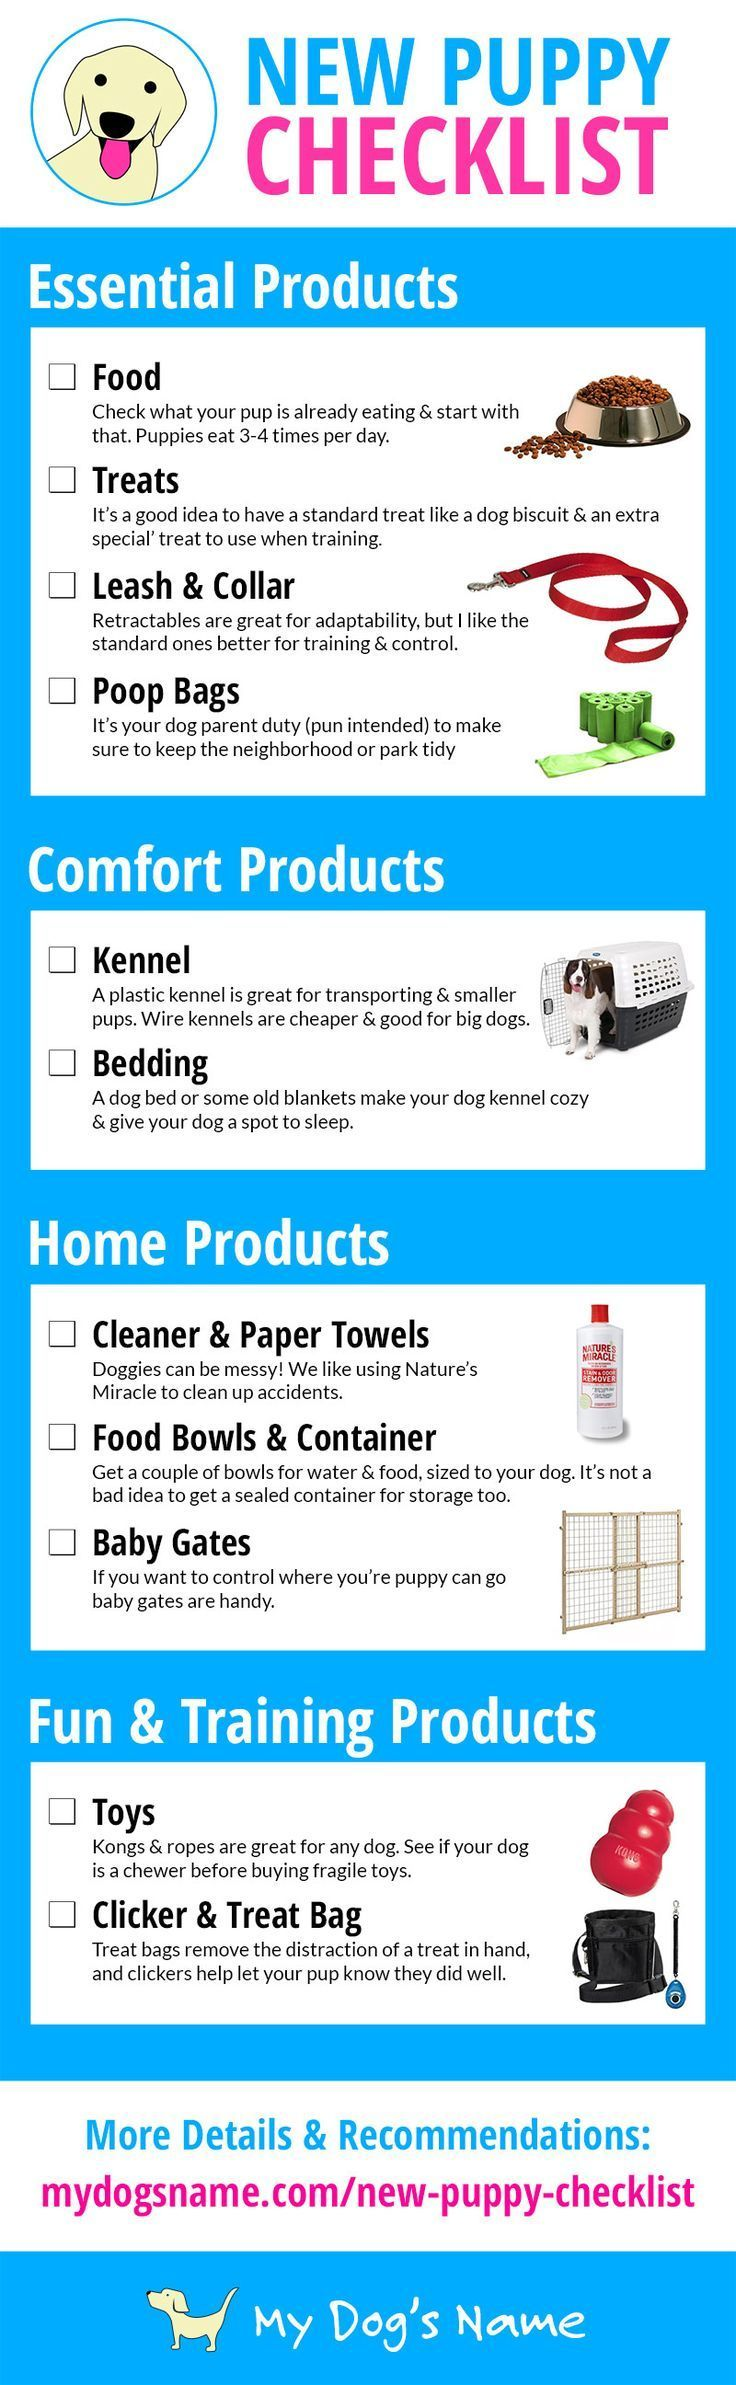 Adopting a new puppy? This checklist gives you a great list of everything you need for your new adventure. Let your new dog have everything he/she needs!